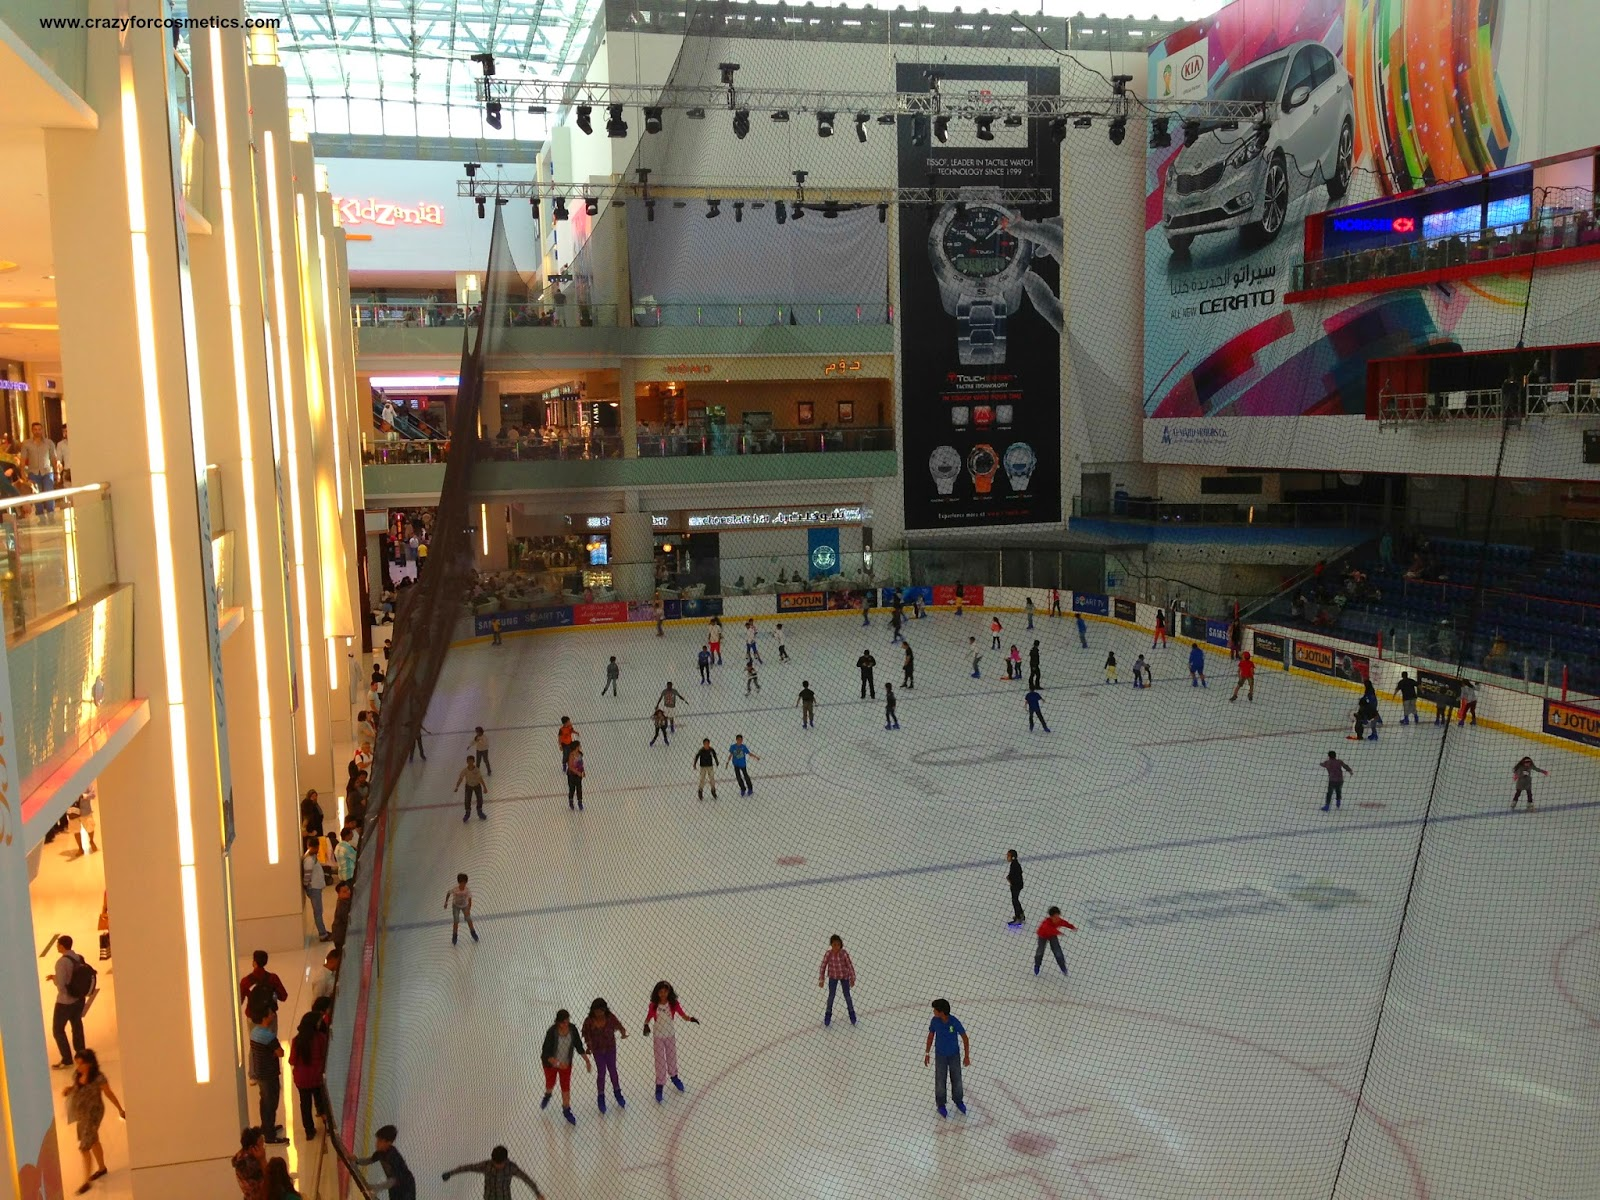 Dubai Mall Shopping-Dubai Mall Entertainment fountain- Mall of EMirates- Ski Dubai- Ice Rink Dubai Mall- Atlantis Palm Jumeira Hotel-Dubai travel blog- Dubai tips